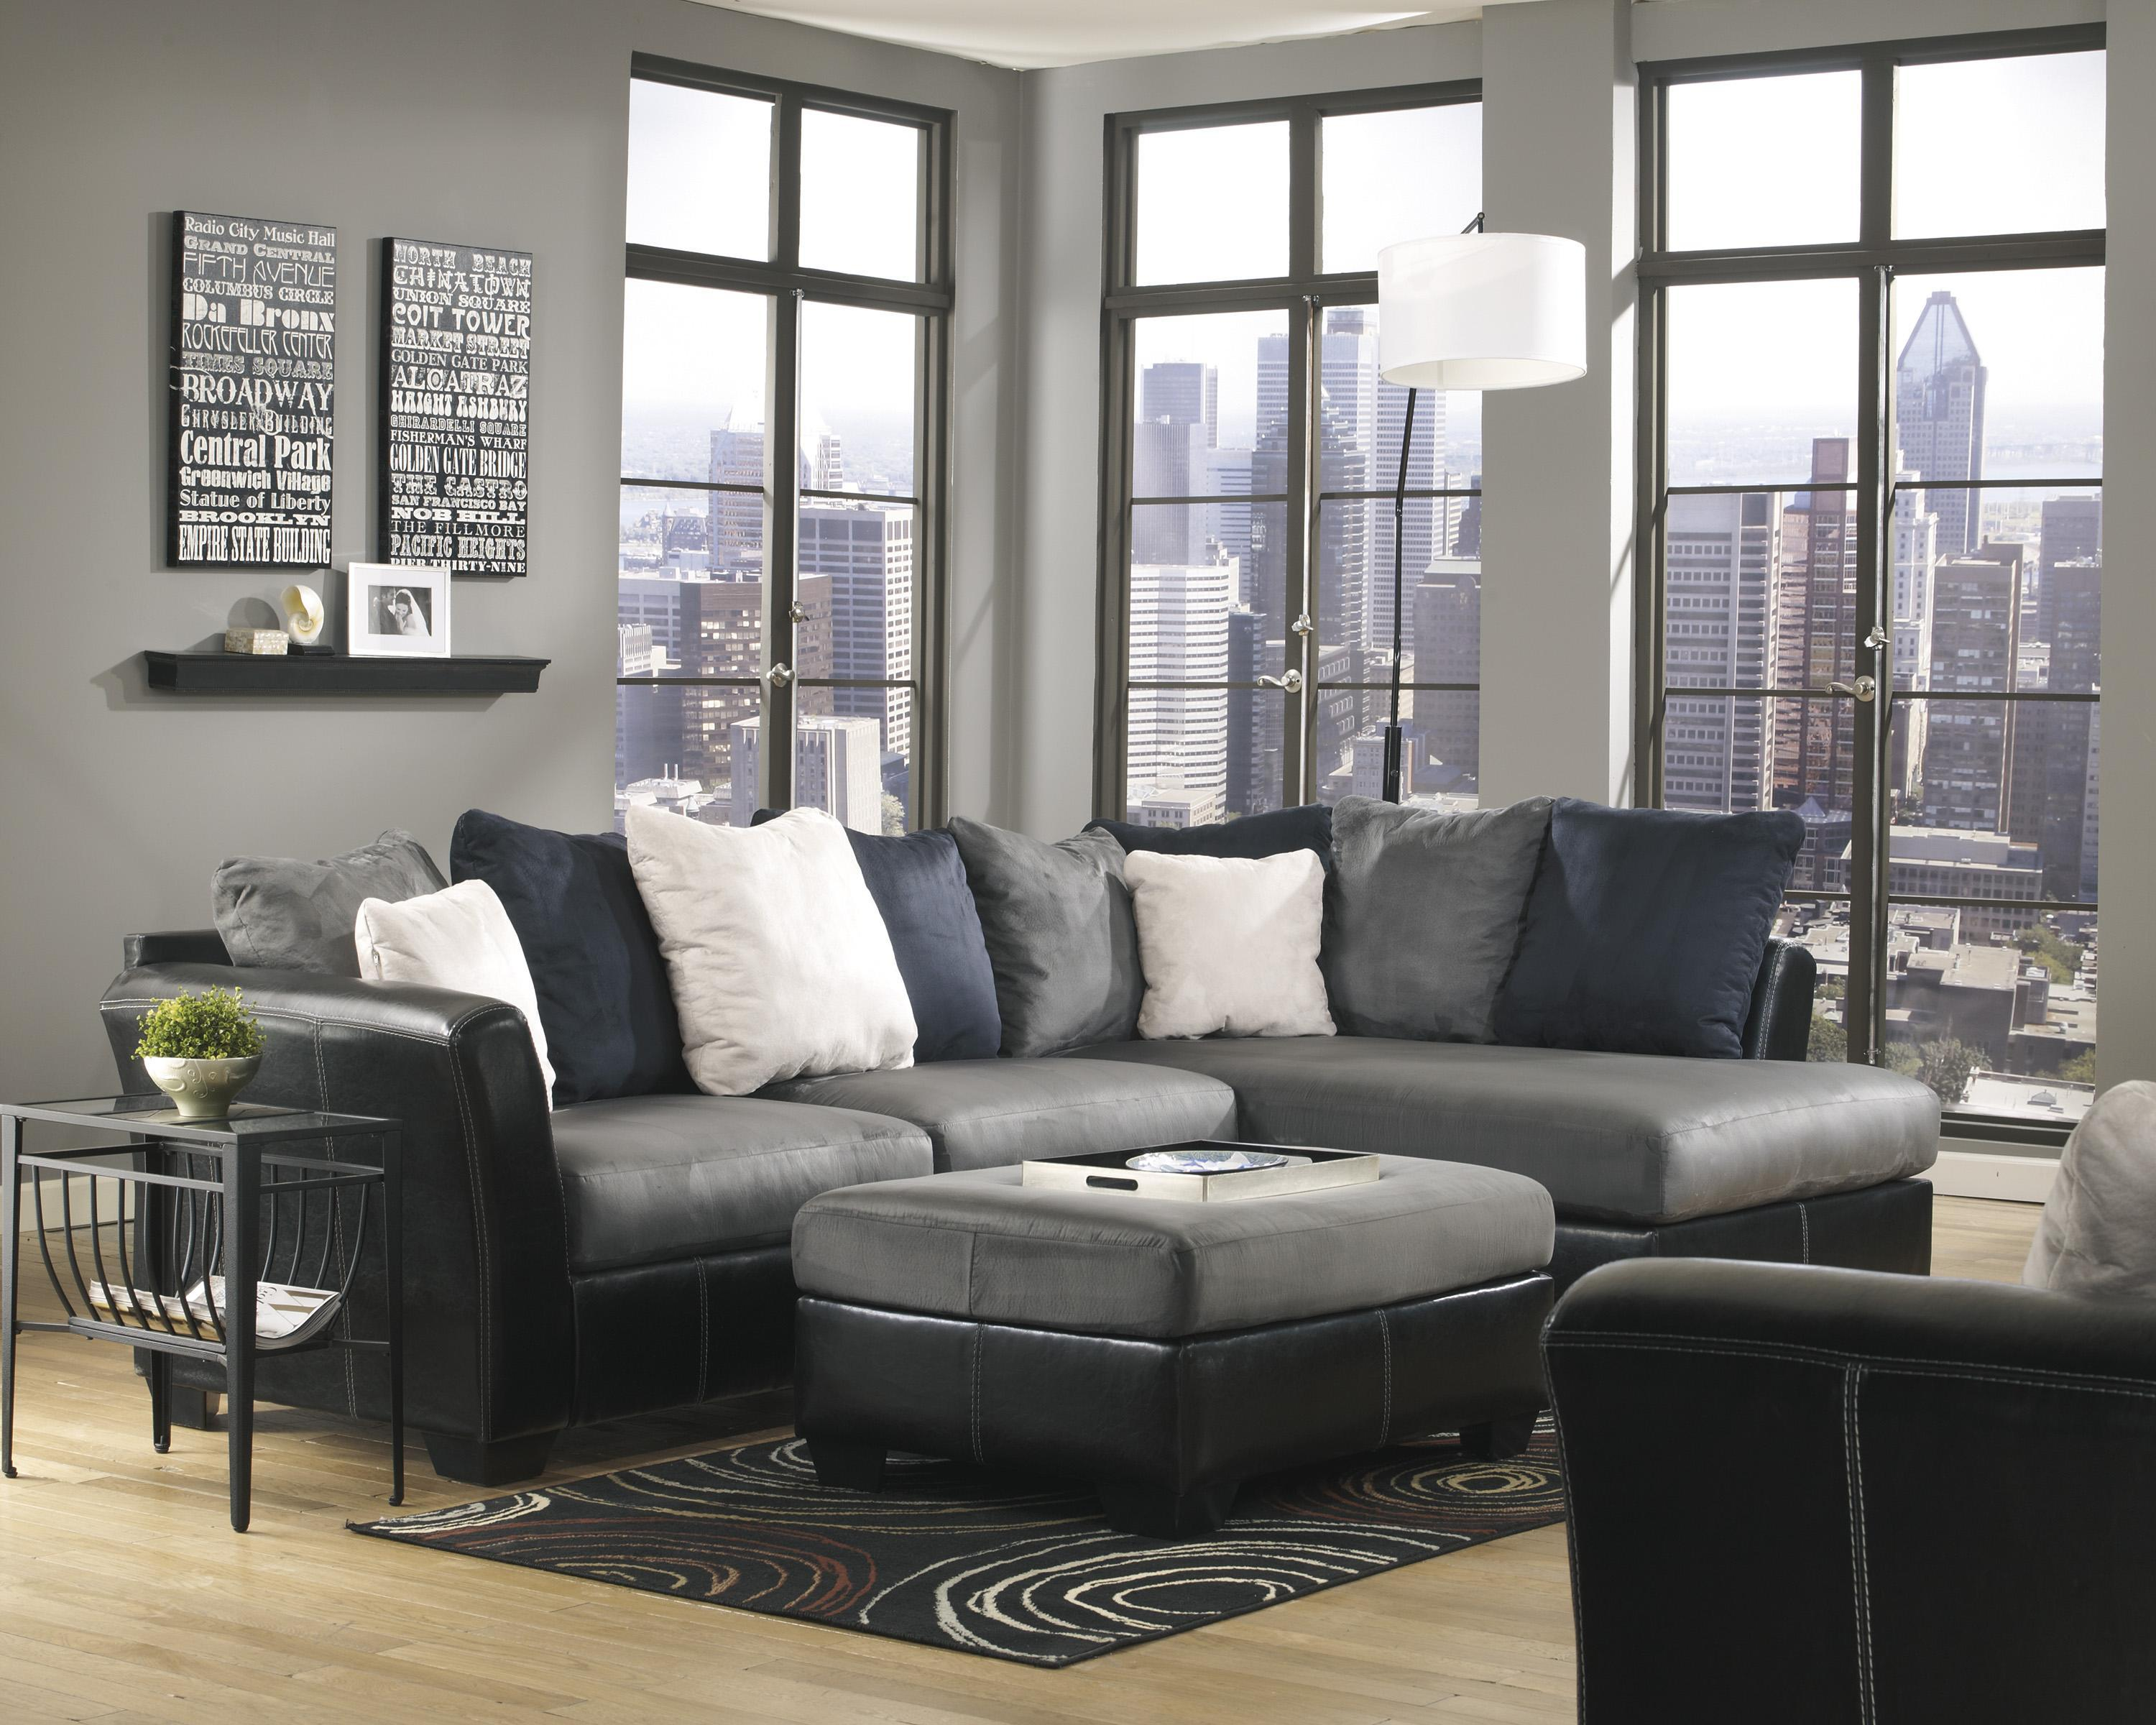 Benchcraft Masoli - Cobblestone Stationary Living Room Group - Item Number: 14200 Living Room Group 9